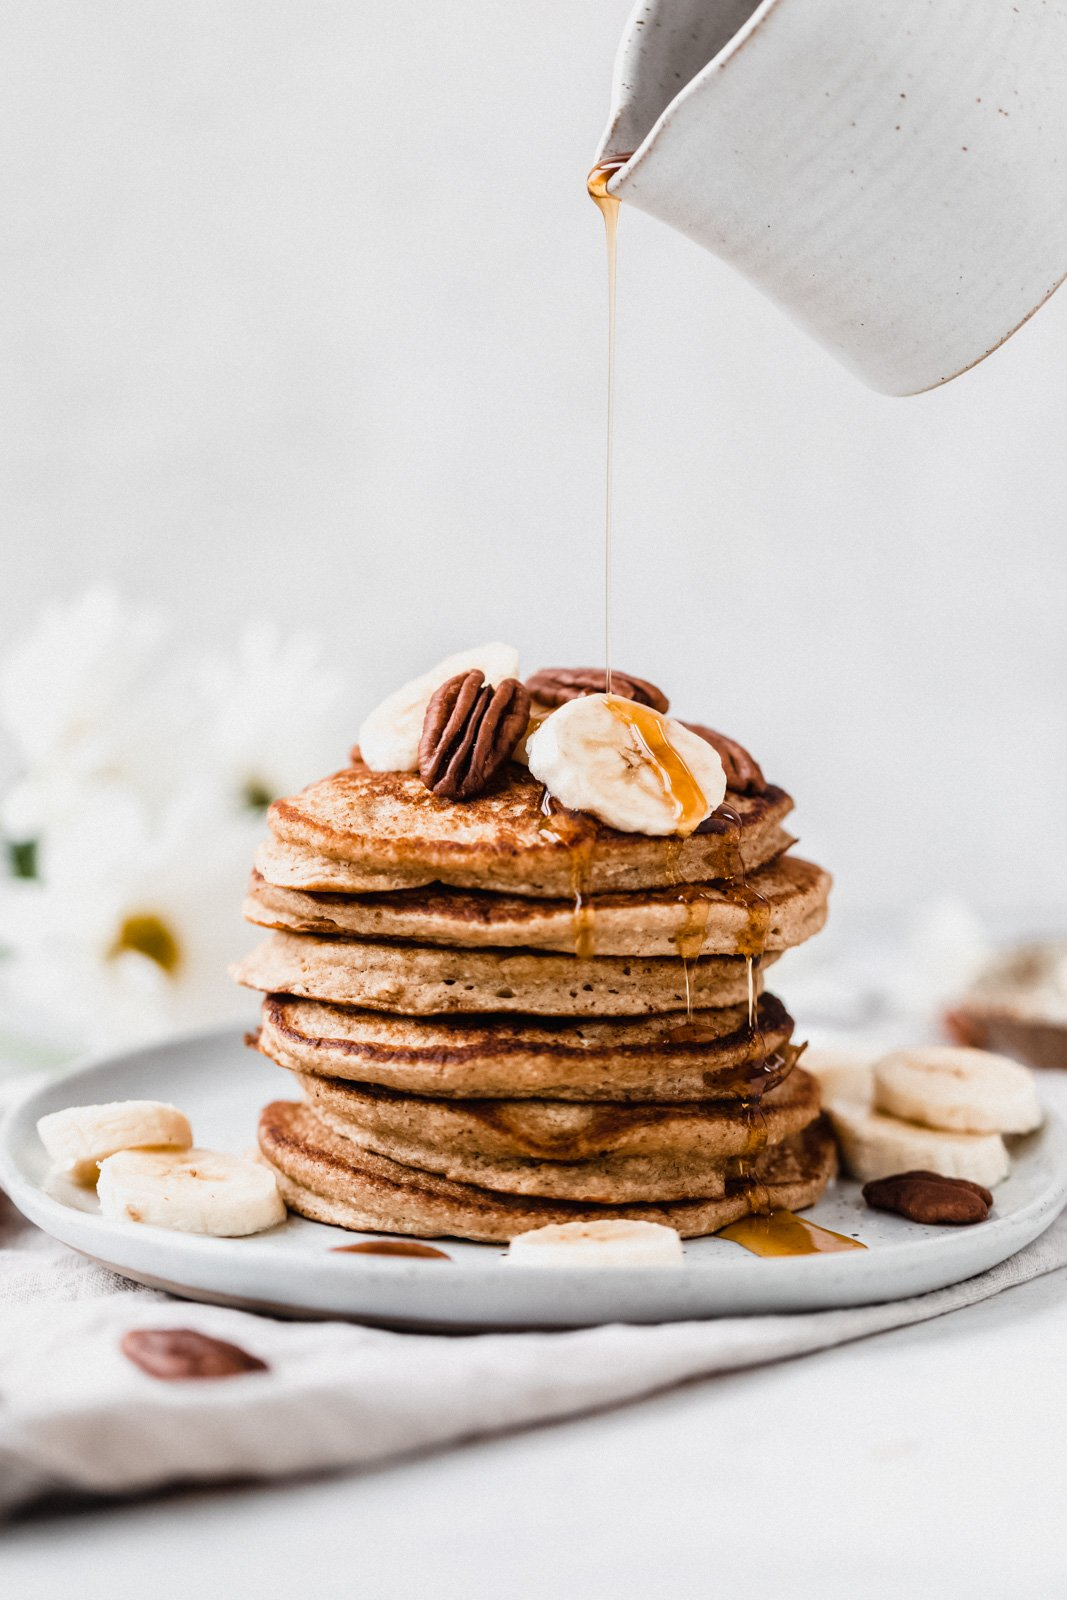 pouring syrup onto a stack of banana oatmeal pancakes